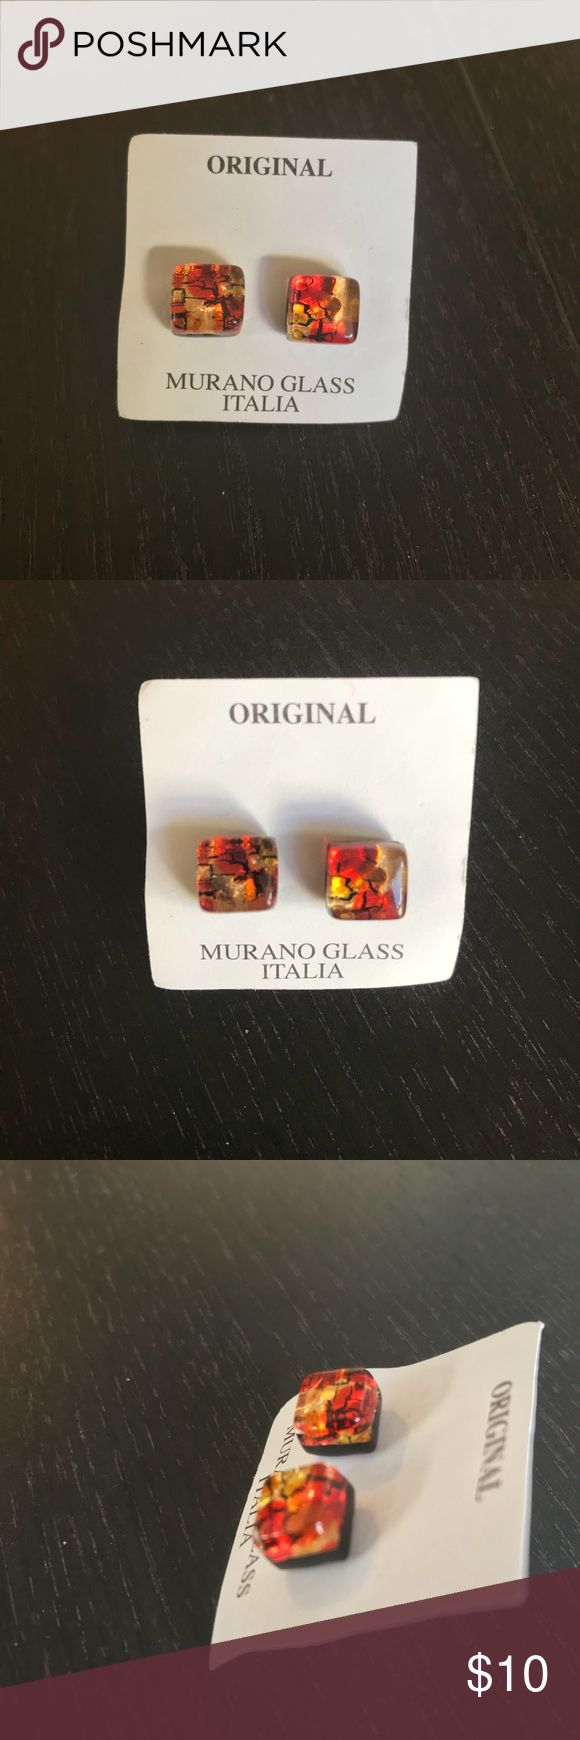 """Murano Glass Stud Earrings These Murano Glass Stud Earrings were purchased from a souvenir shop in Venice near the Rialto Bridge last fall. These square-shaped stud earrings are a mix of red, gold, and black. Lightweight and 1/4"""". Beautiful and unique pair of earrings. Jewelry Earrings"""